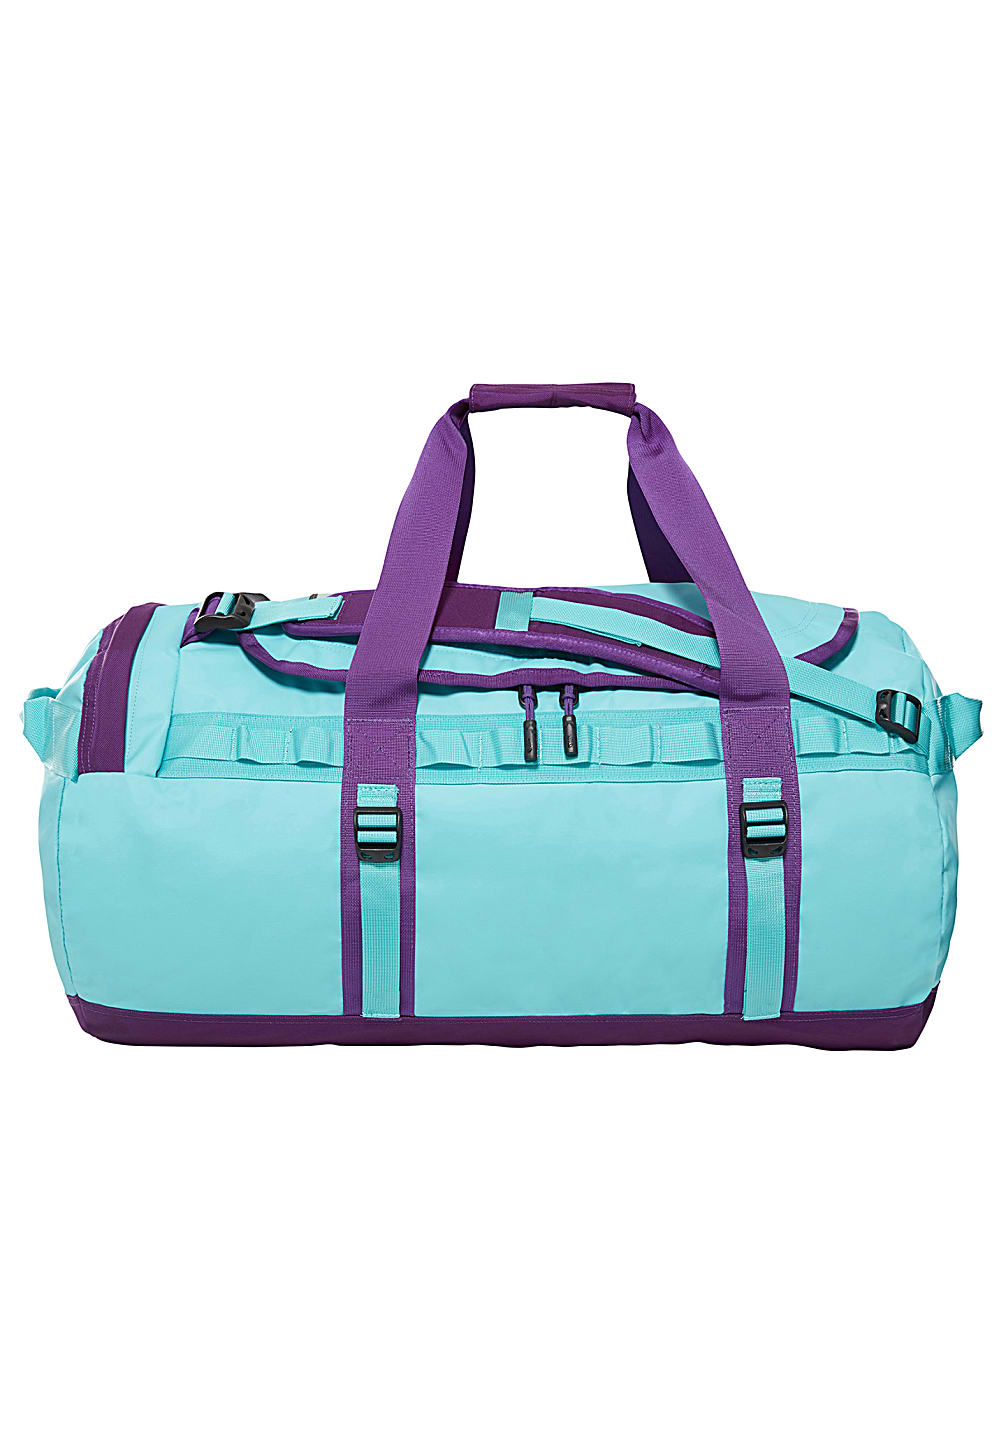 Next. This product is currently out of stock. THE NORTH FACE. Base Camp  Duffel M - Borsa sportiva 19fbe9863d0